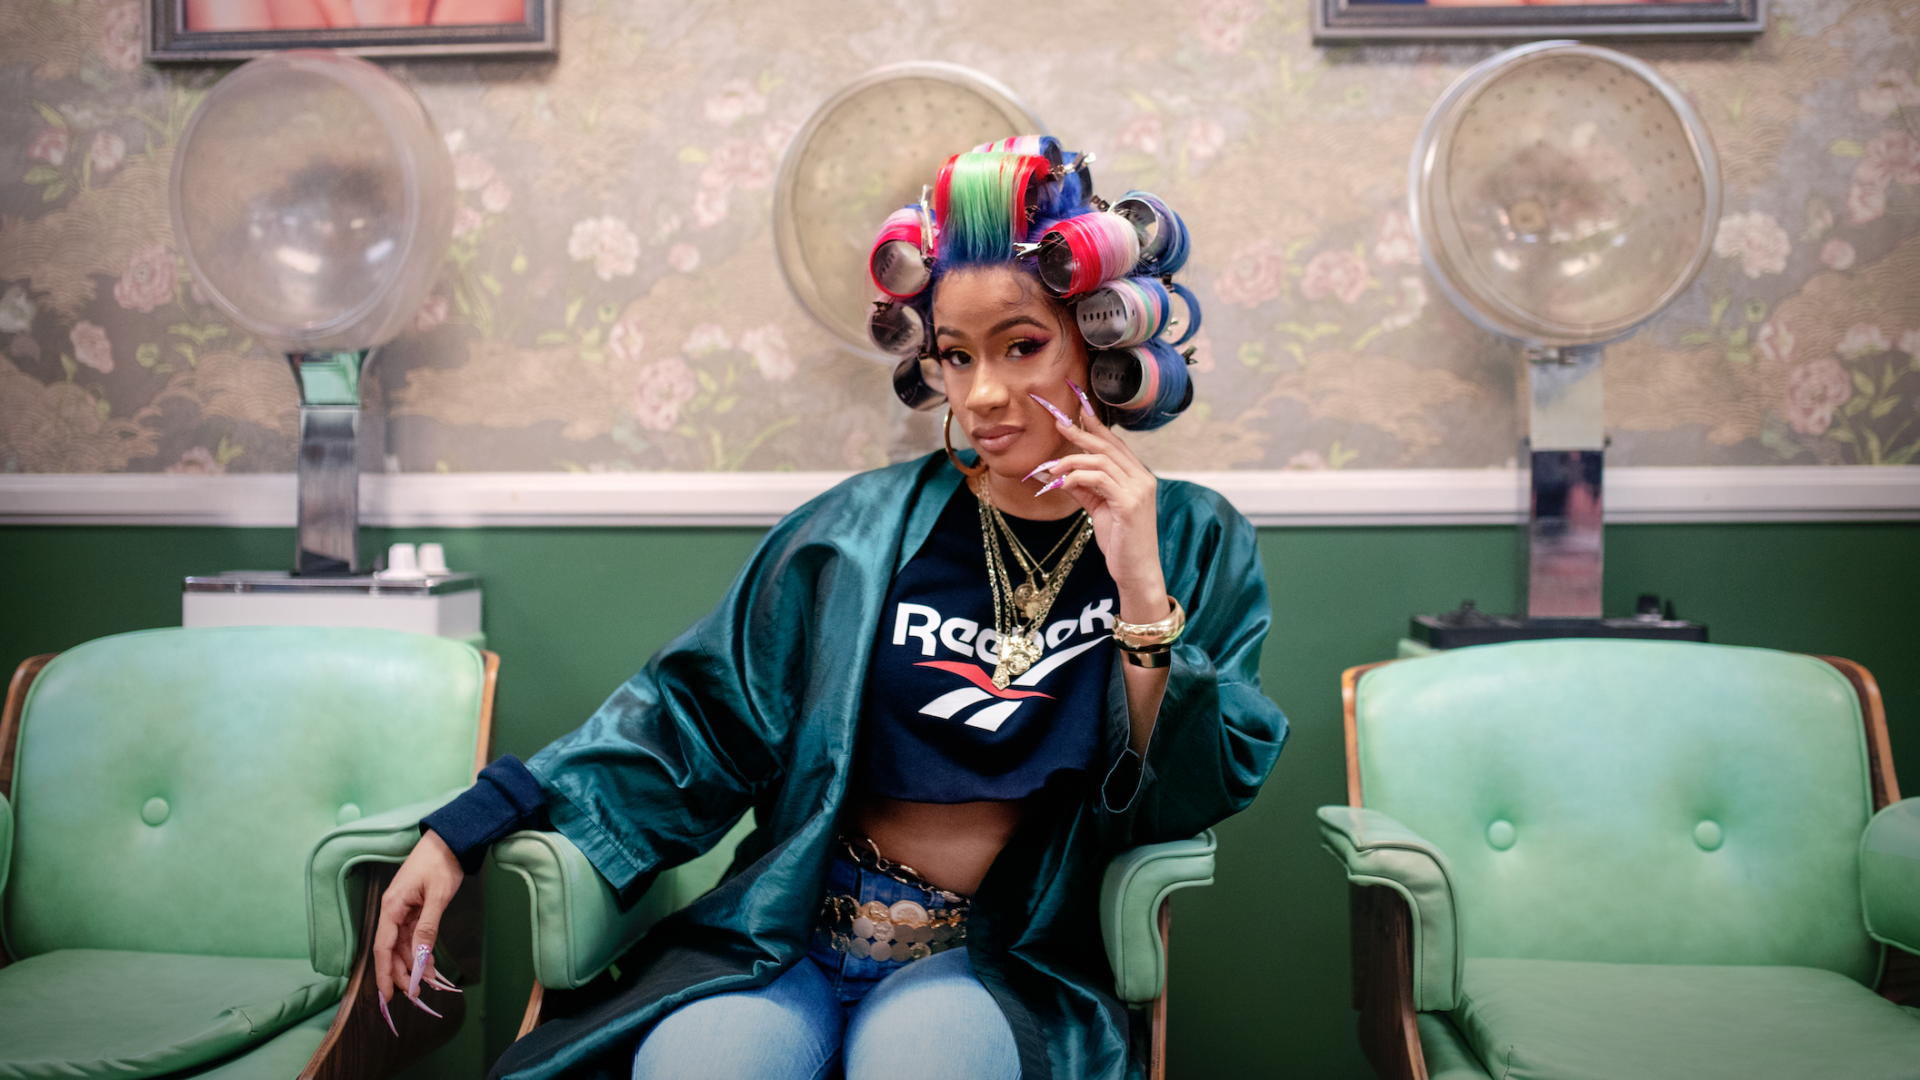 Reebok Tabs Cardi B and Her Nails For Its Latest Campaign